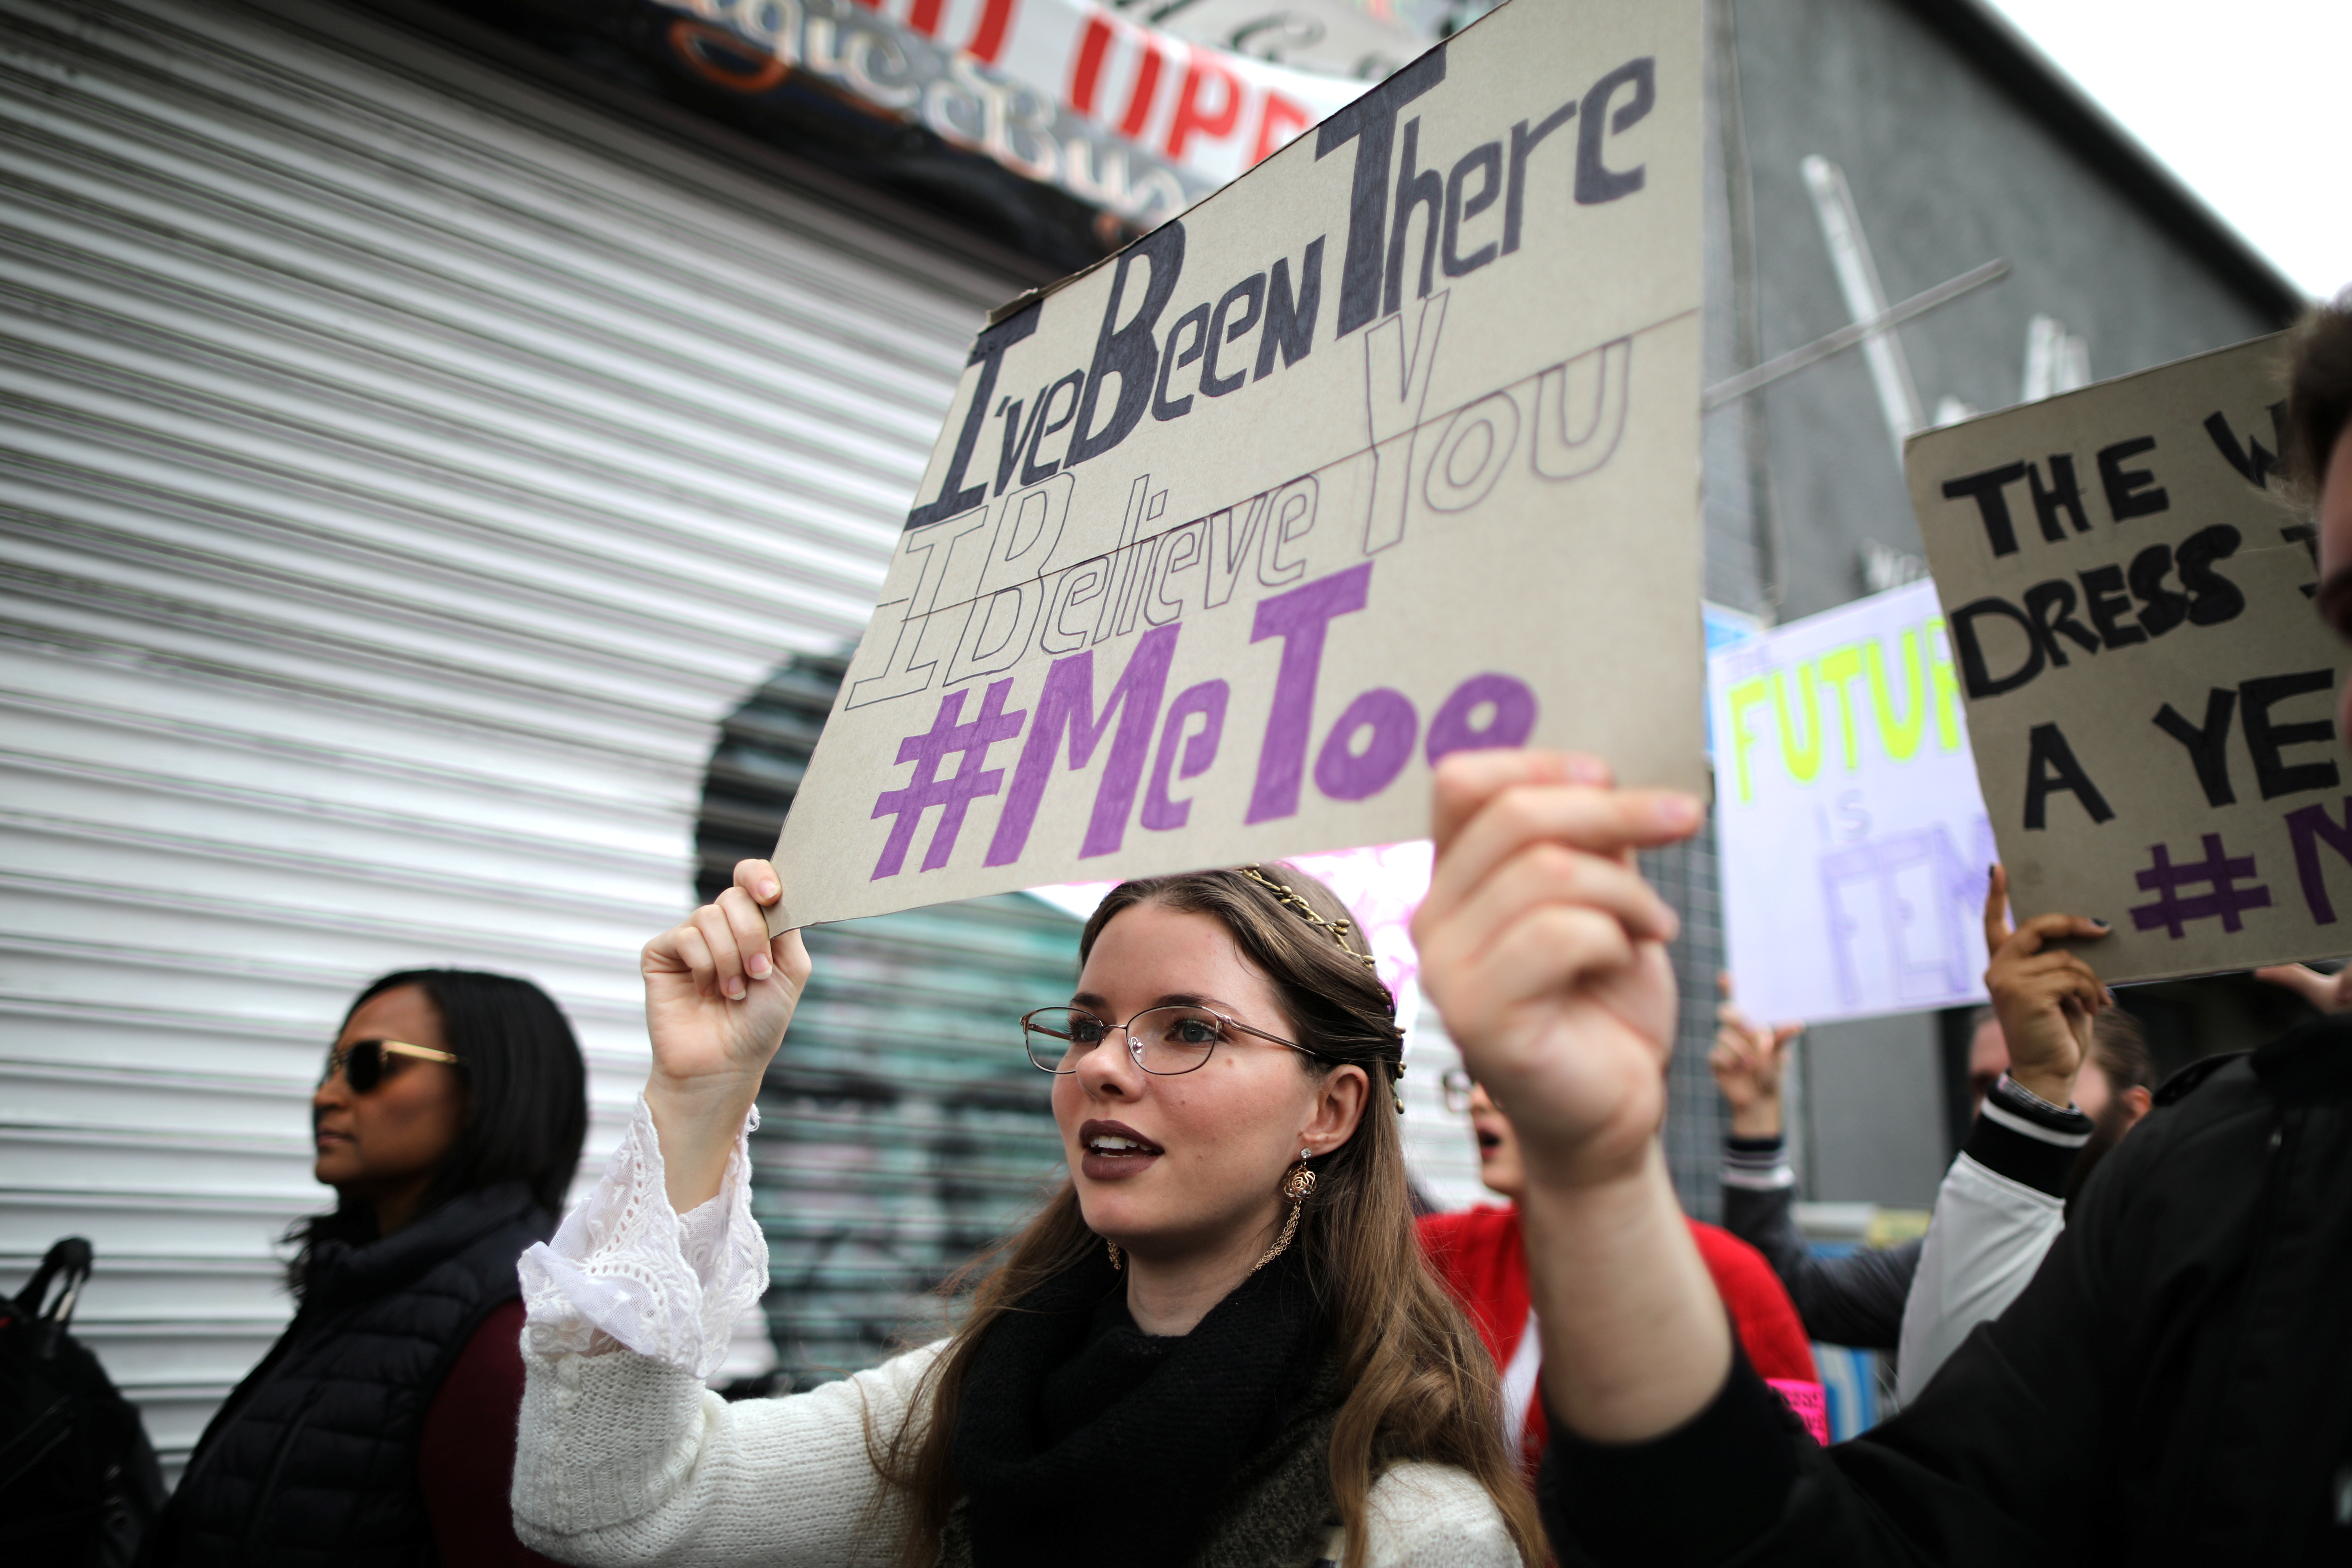 People participate in a protest march for survivors of sexual assault and their supporters in Hollywood, Los Angeles, California U.S. November 12, 2017. REUTERS/Lucy Nicholson - RC1CEFF7E260